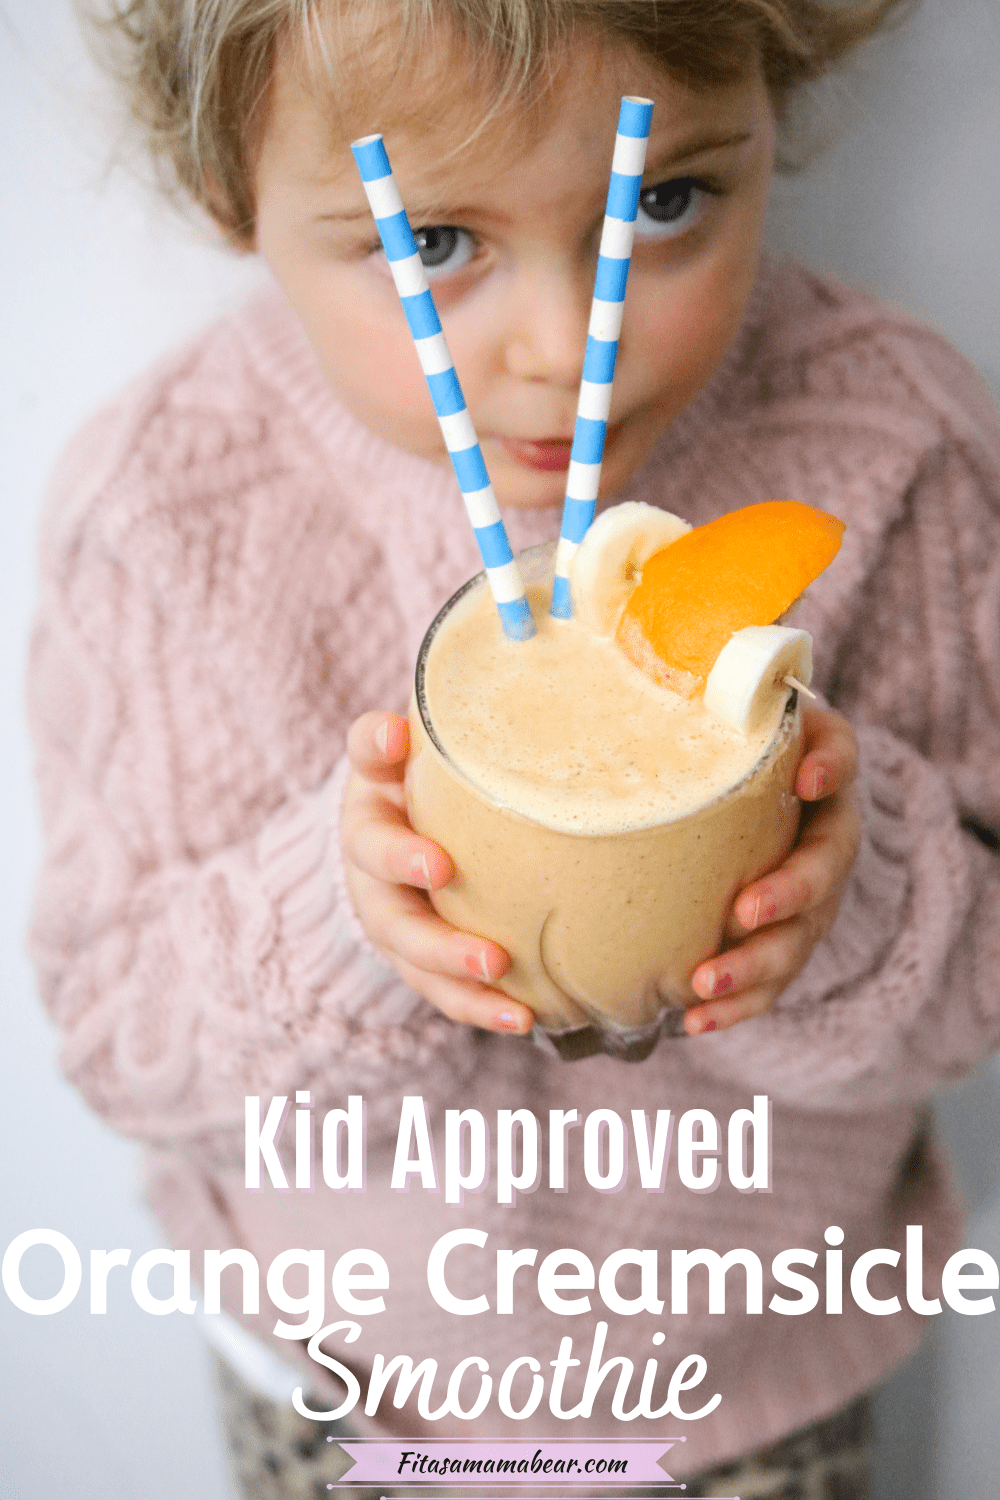 Pinterest image with text: toddler in pink sweater holding an orange creamsicle smoothie in a glass with blue straws